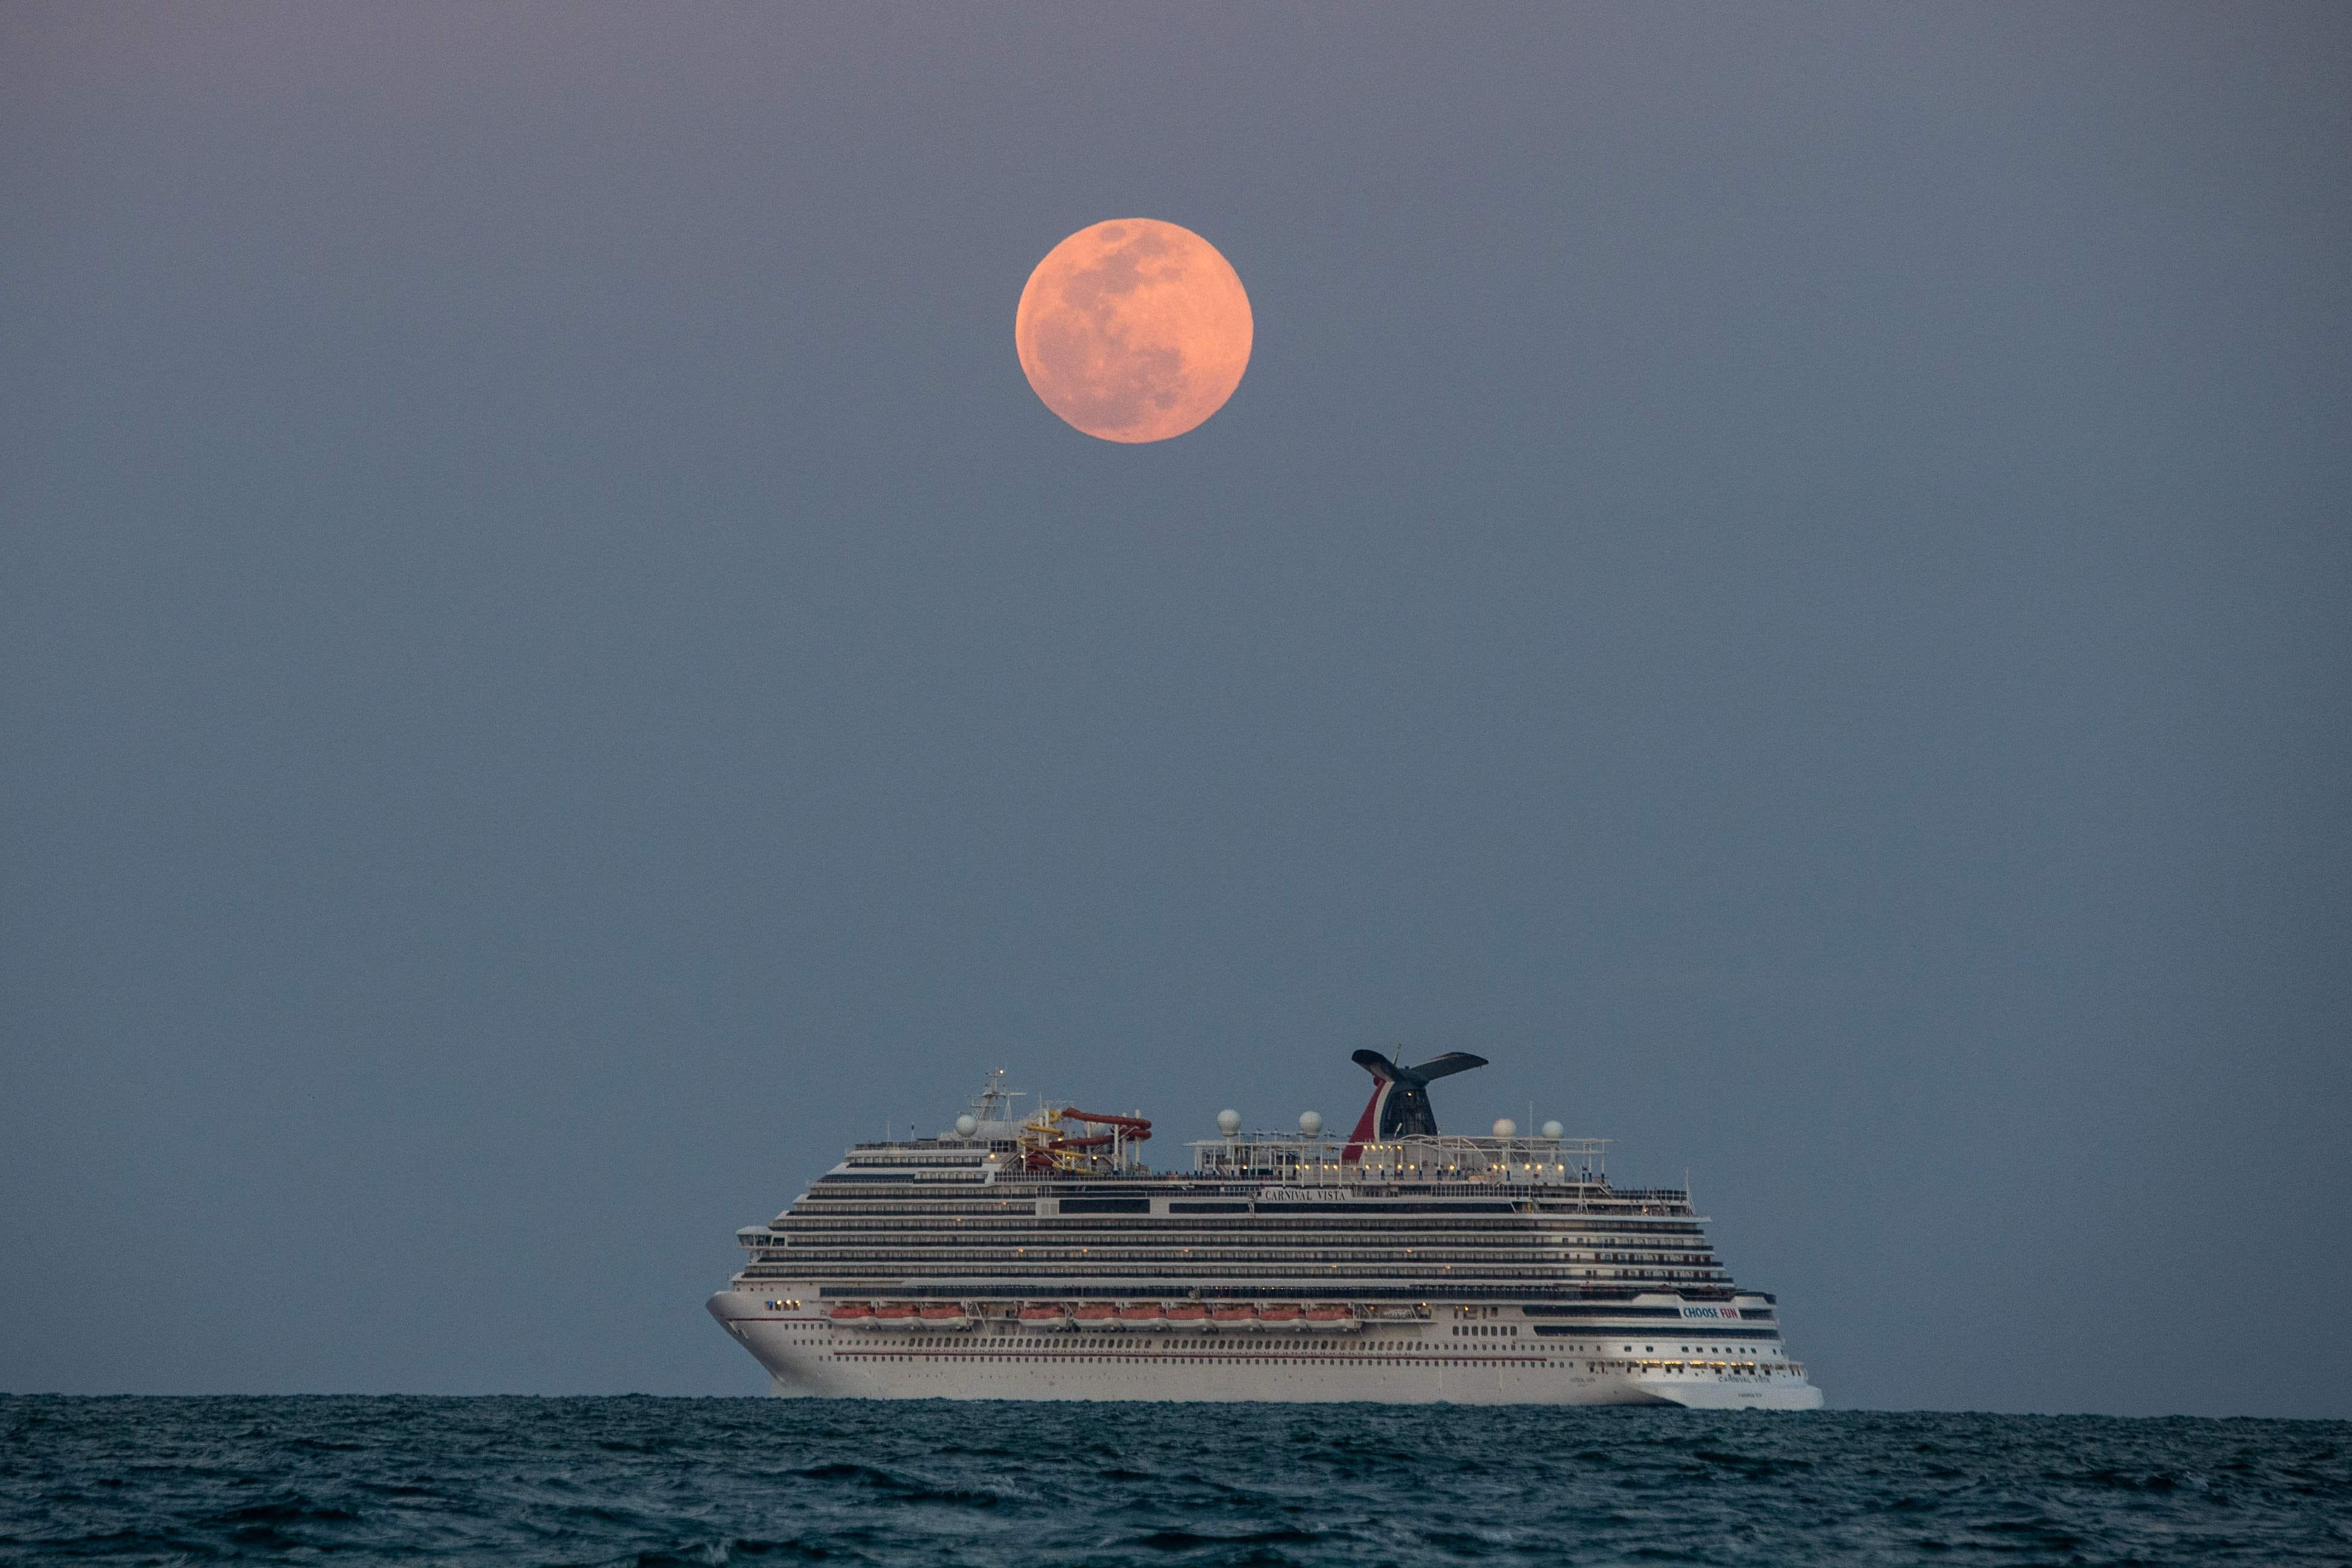 U.S. cruises could restart in mid-July with 95% of passengers fully vaccinated, CDC says